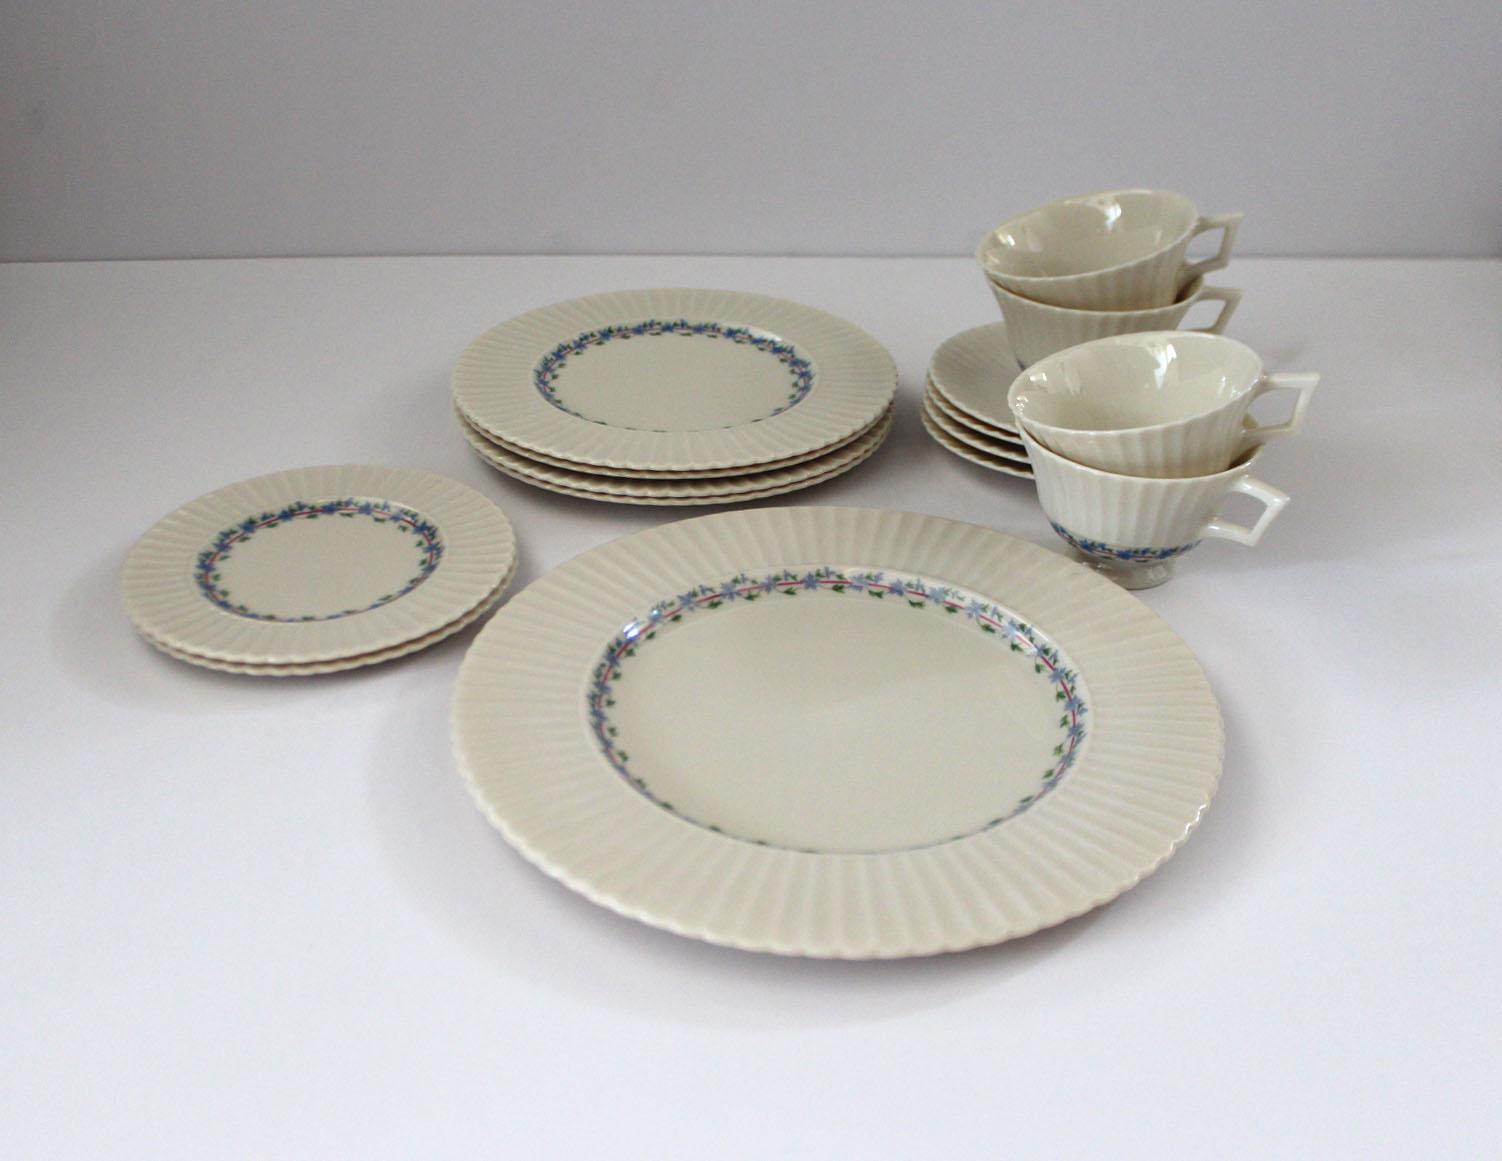 Delicieux Beautiful Fine China By Lenox. Plates And Tea Cups Are Surrounded By A Baby  Glue